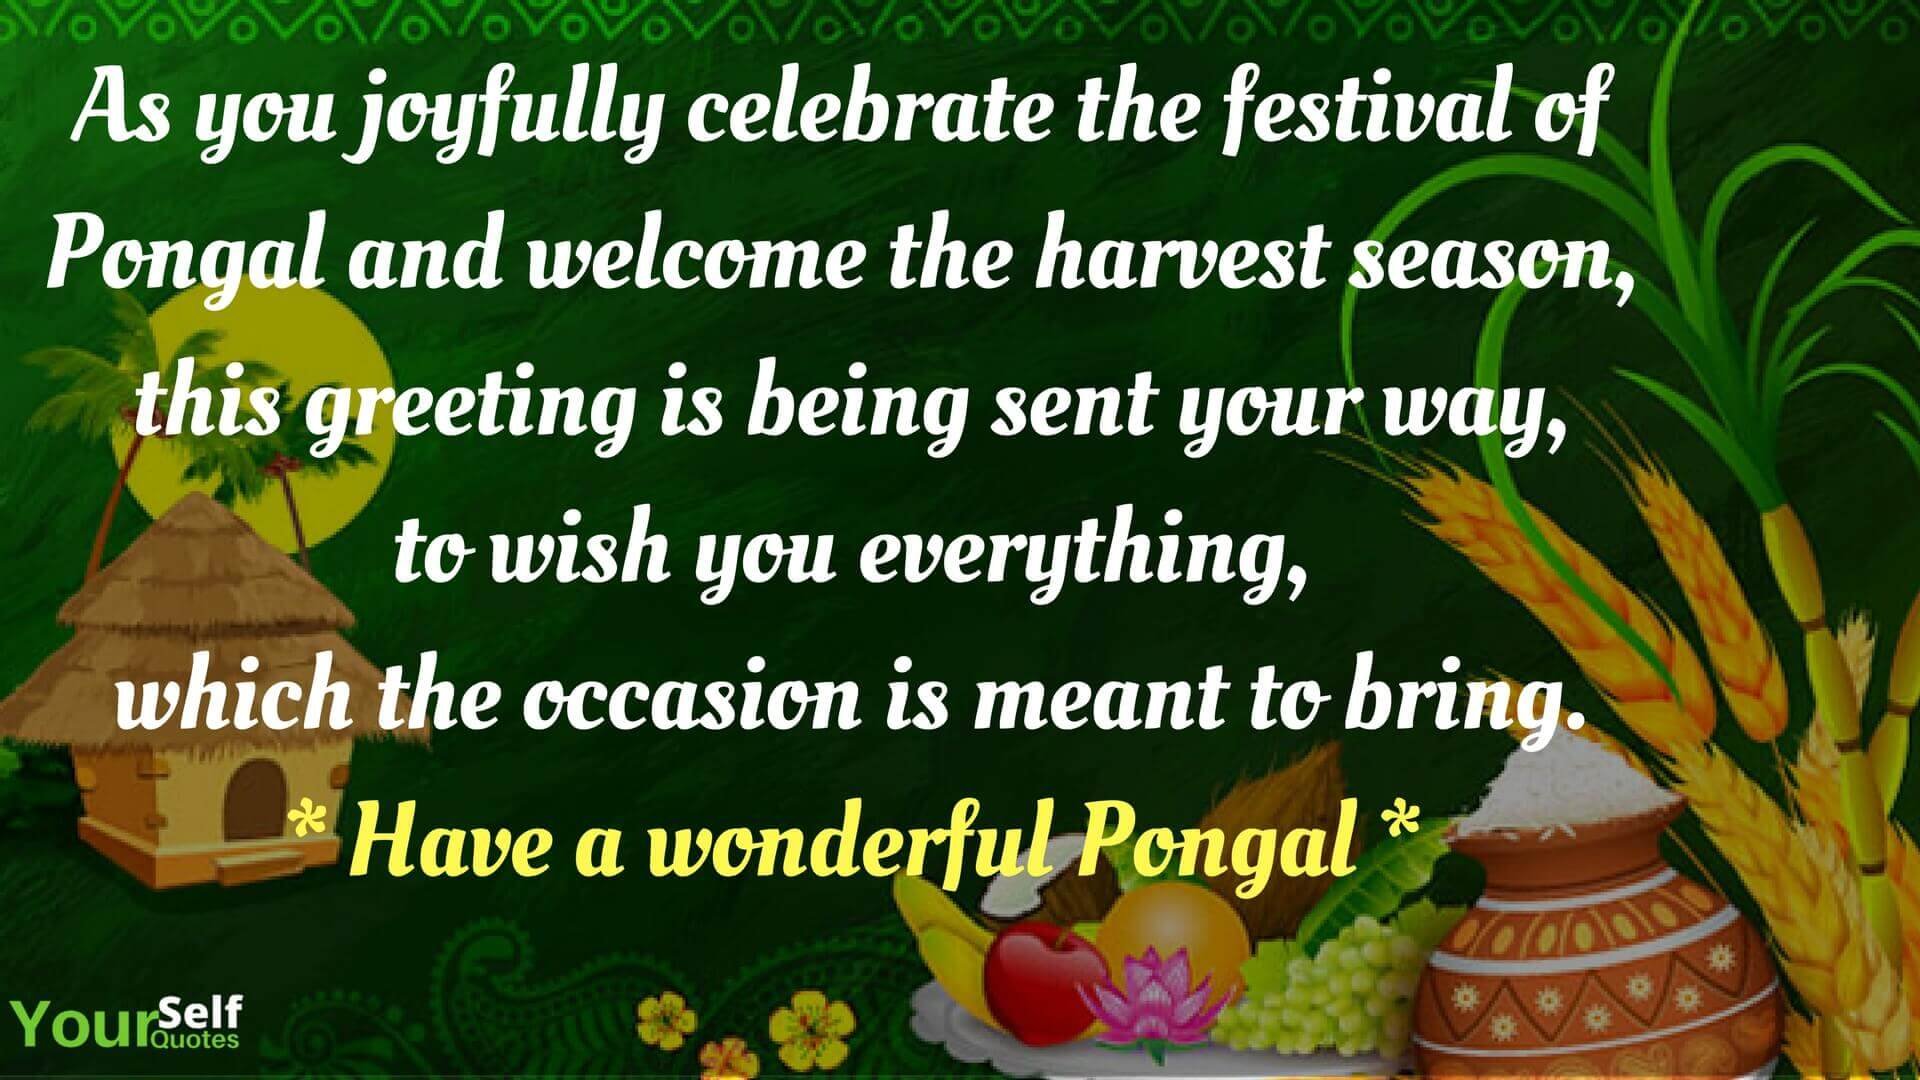 Happy Pongal Festival Wishes Photo